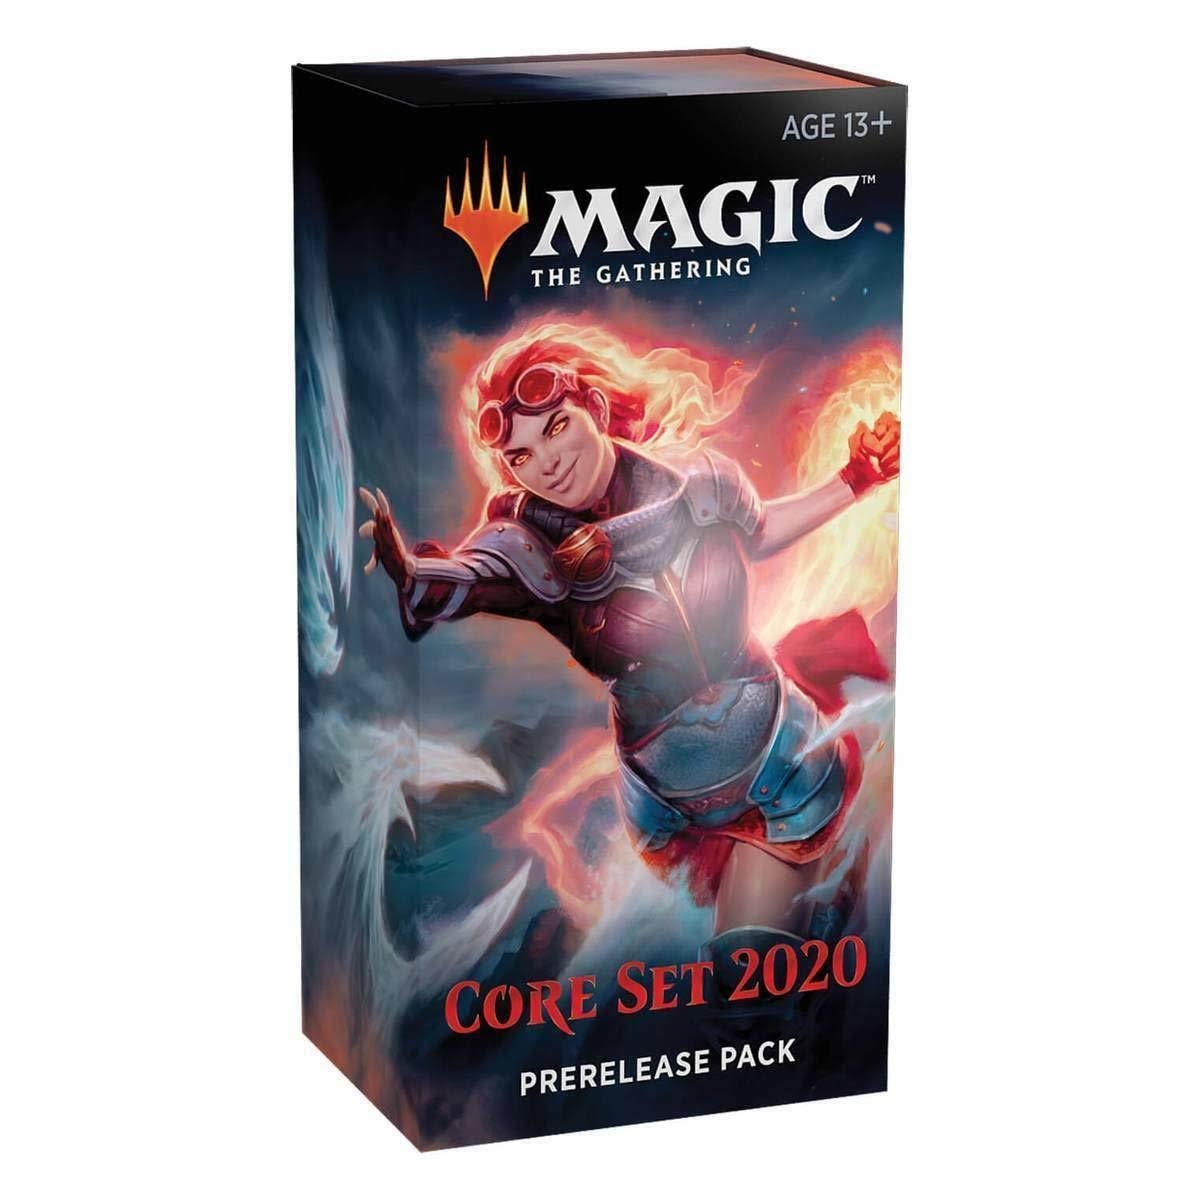 Magic The Gathering Core Set 2020 Prerelease Pack